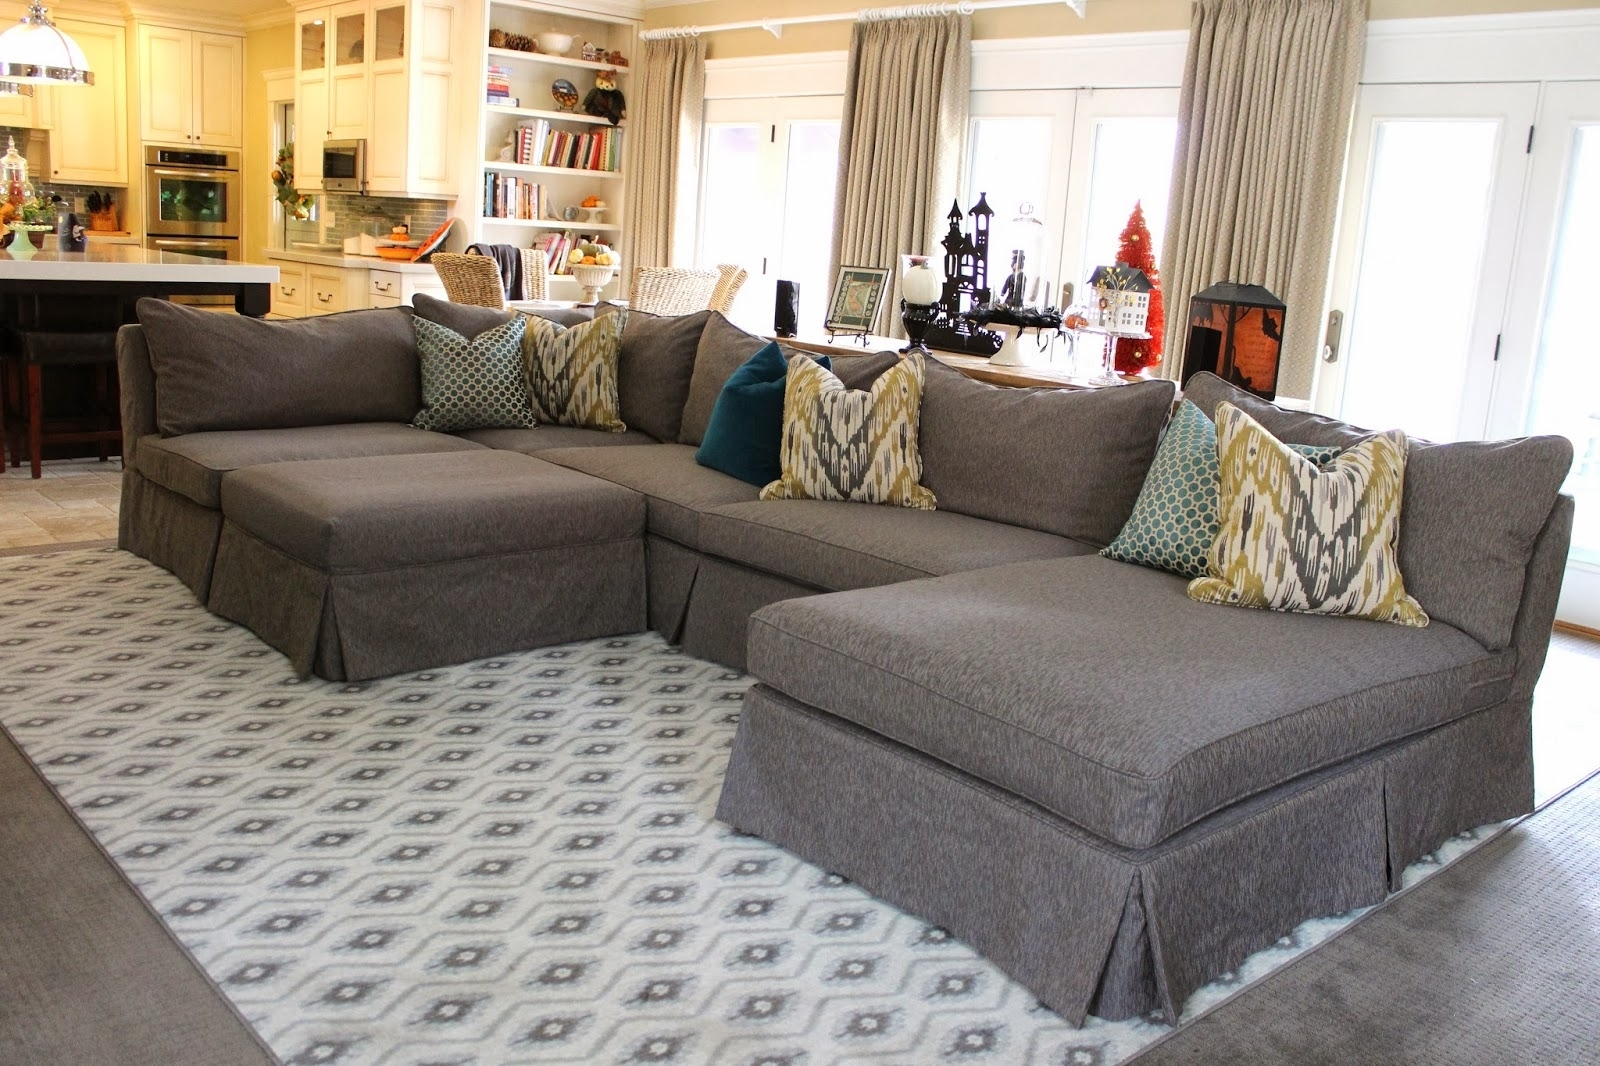 Joining Hardware Sectional Sofas In Recent Furniture : Sectional Sofa Joining Hardware Corner Couch House And (Gallery 8 of 20)